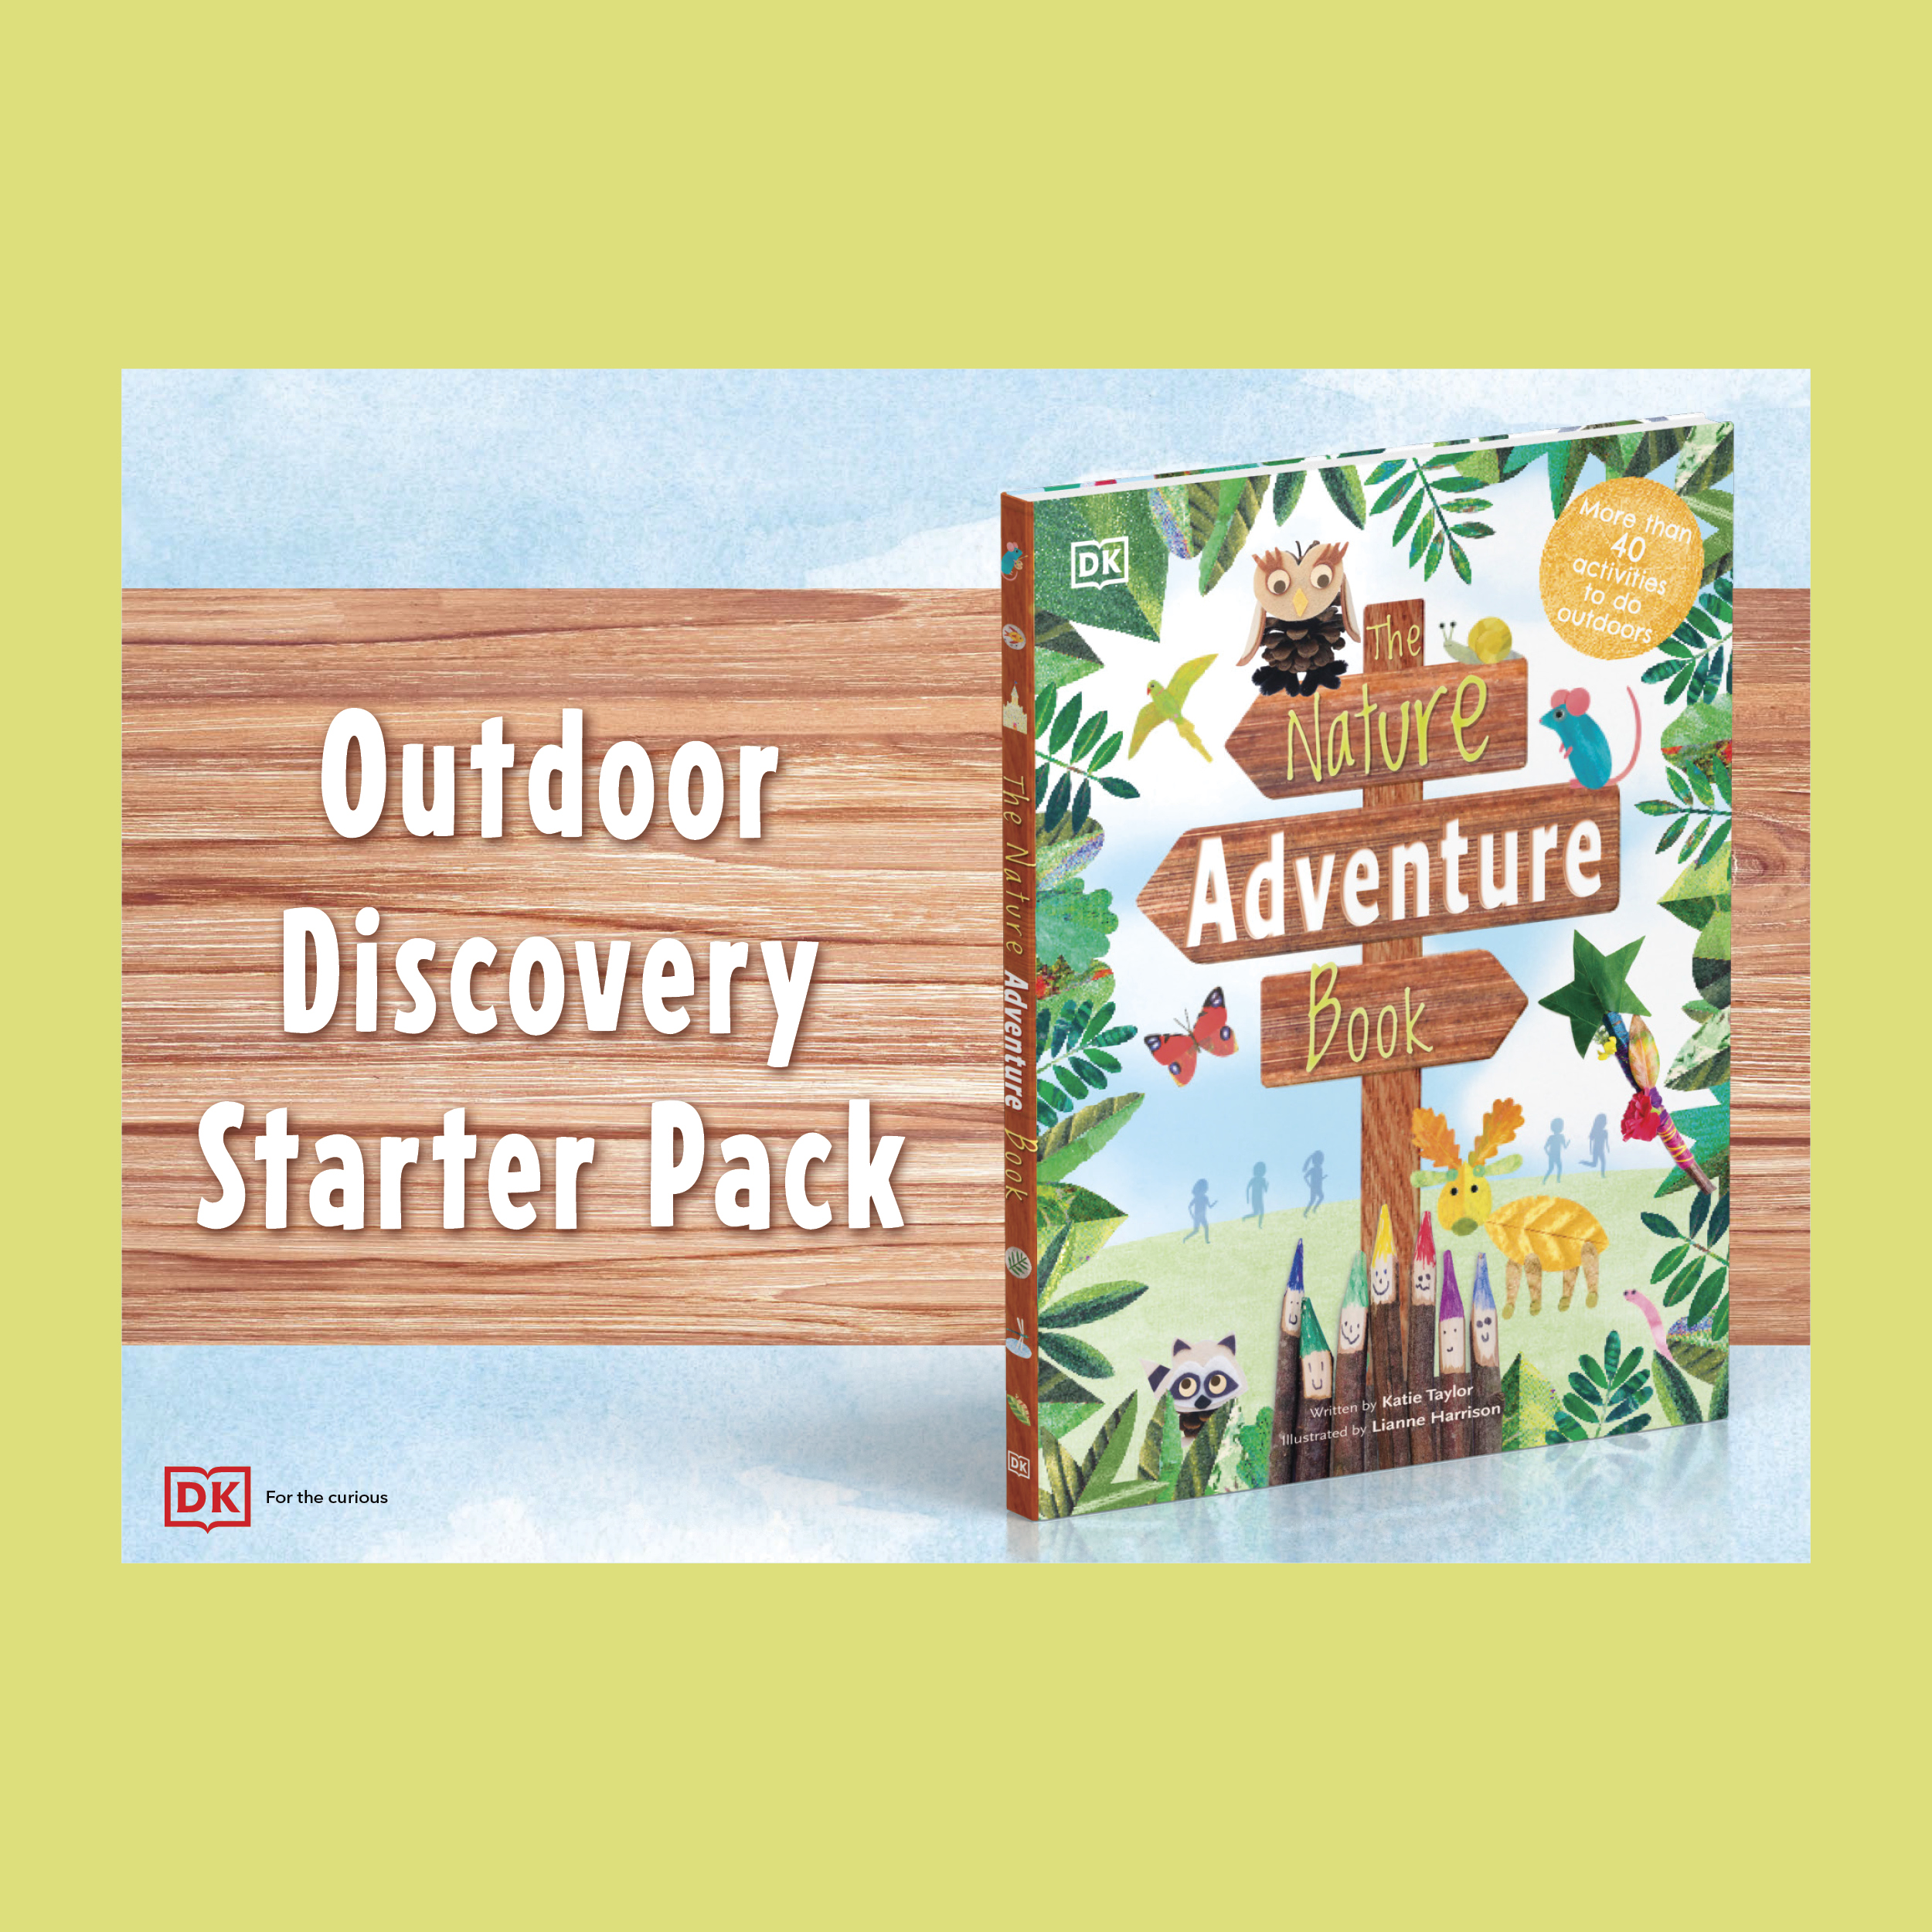 Outdoor Discovery Starter Pack pdf